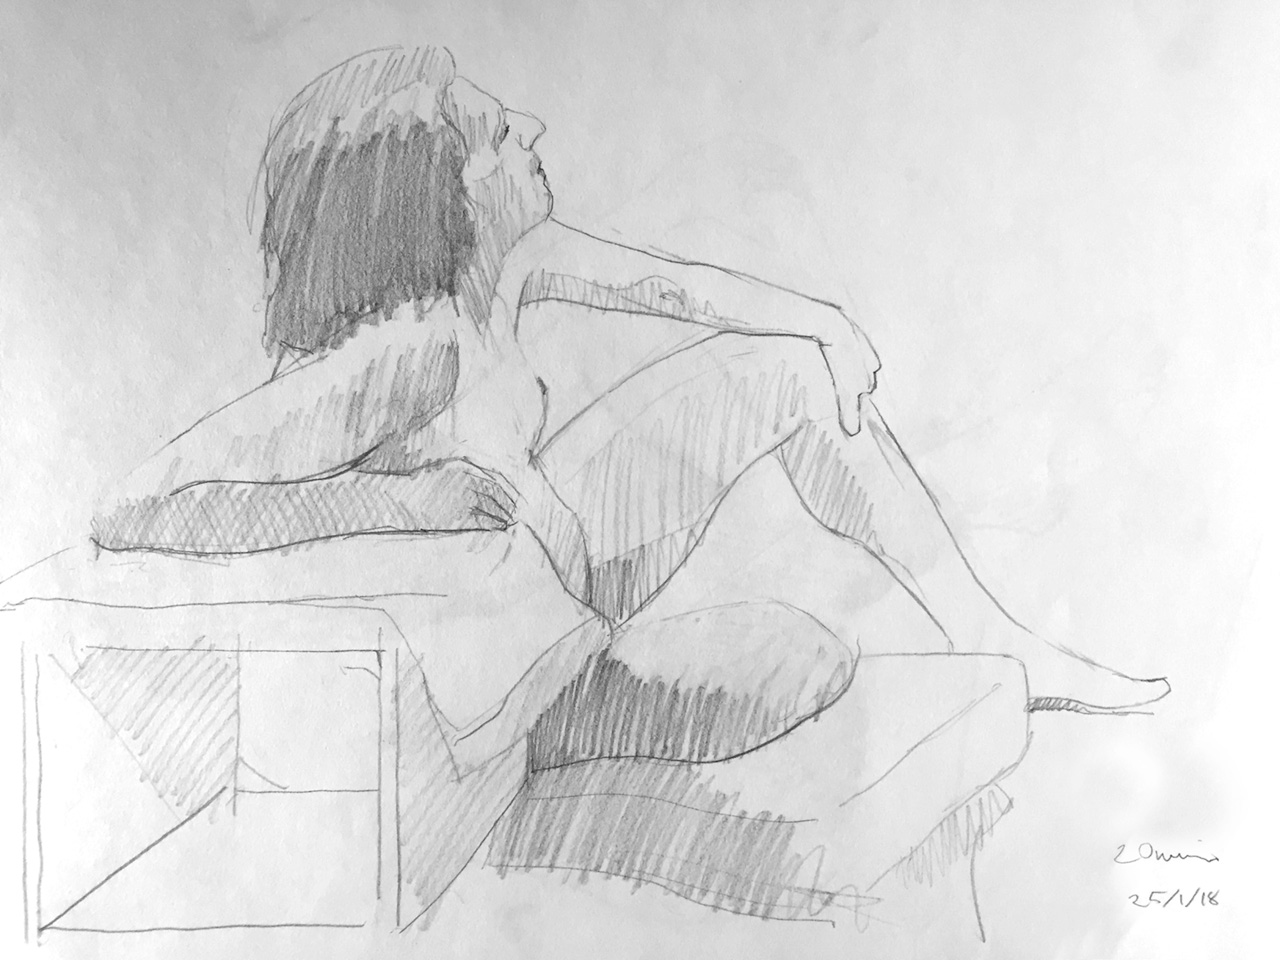 Life Drawing Sesssion 25/1/18